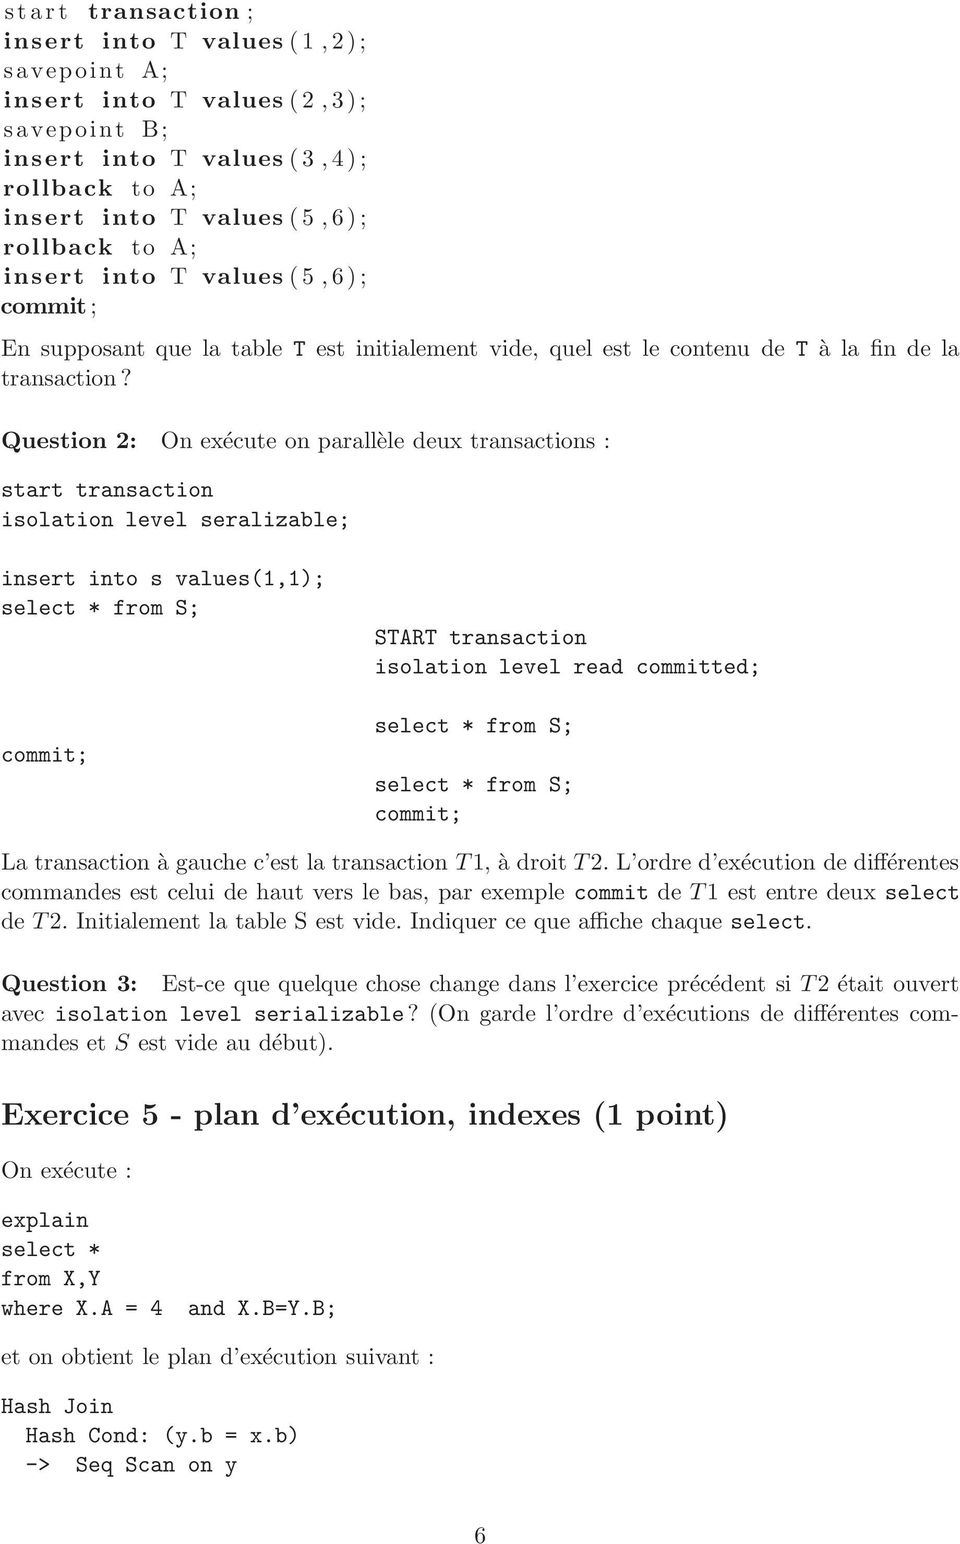 Question 2: On exécute on parallèle deux transactions : start transaction isolation level seralizable; insert into s values(1,1 select * from S; commit; START transaction isolation level read